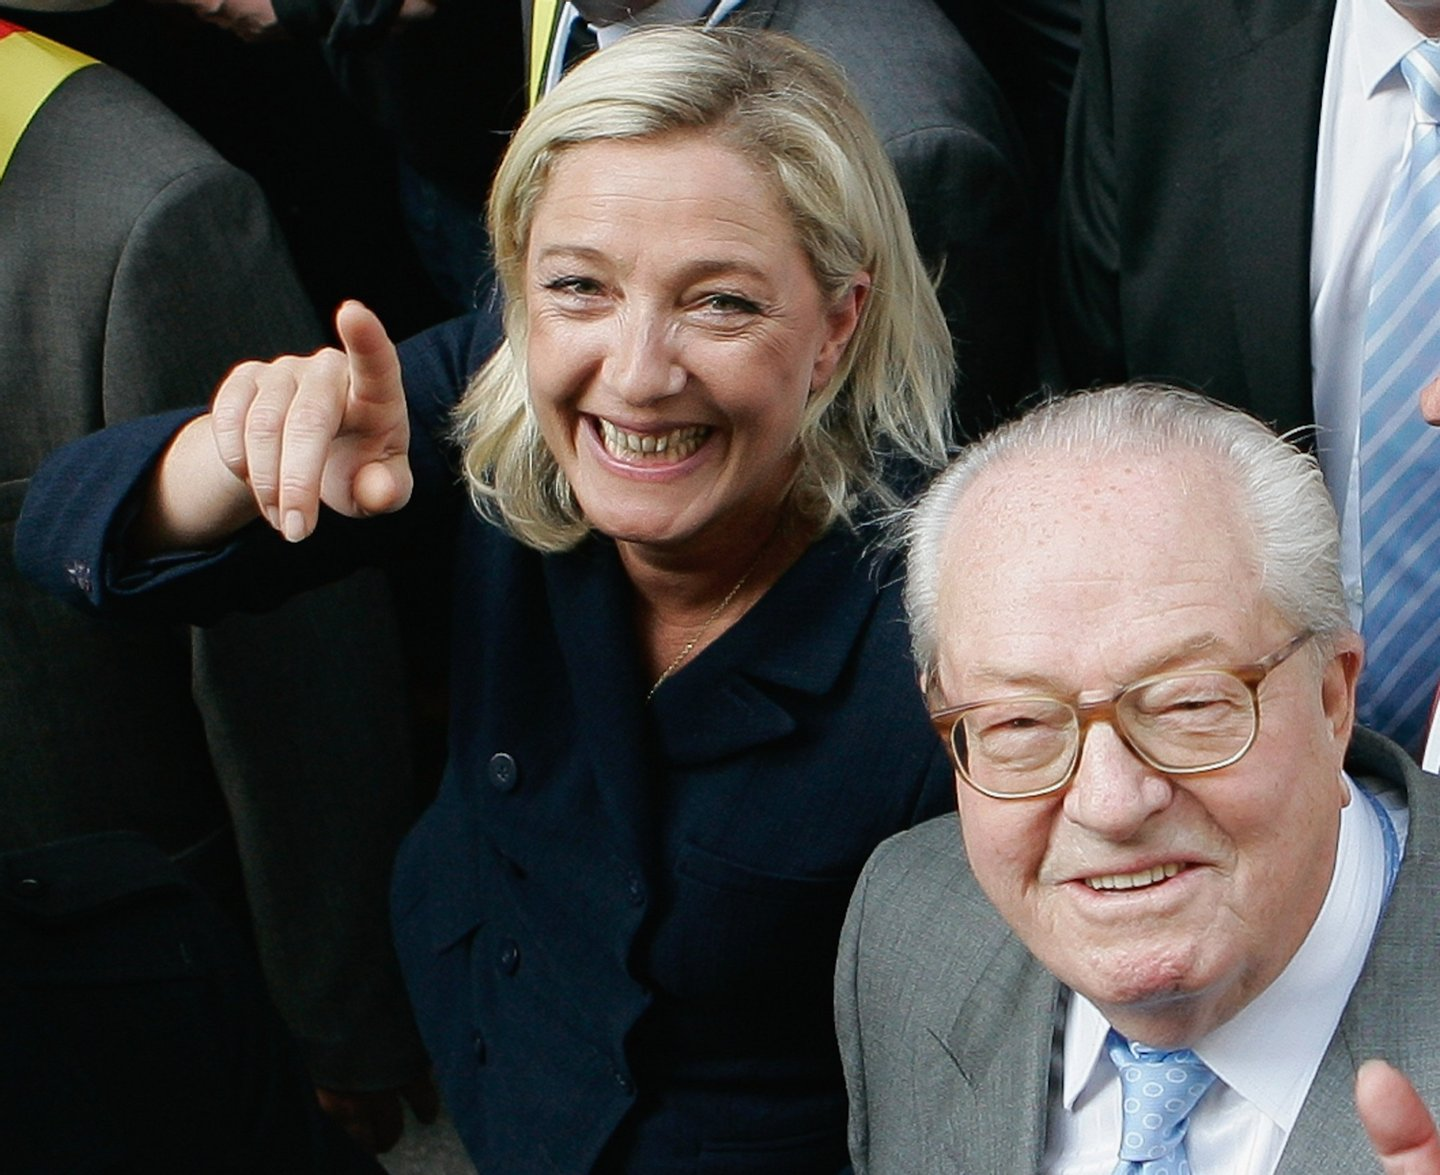 PARIS, FRANCE - MAY 01:  France's far-right National Front President,  Marine Le Pen (L) and her father Jean-Marie Le Pen take part in a march as part of the party's annual celebration of Joan of Arc on May 1, 2011 in Paris, France. France's far-right National Front members took part in its traditional Joan of arc May Day Rally with the party's new leader, as thousands across the globe took to the streets to rally for worker's rights on International Workers' Day.  (Photo by Franck Prevel/Getty Images)